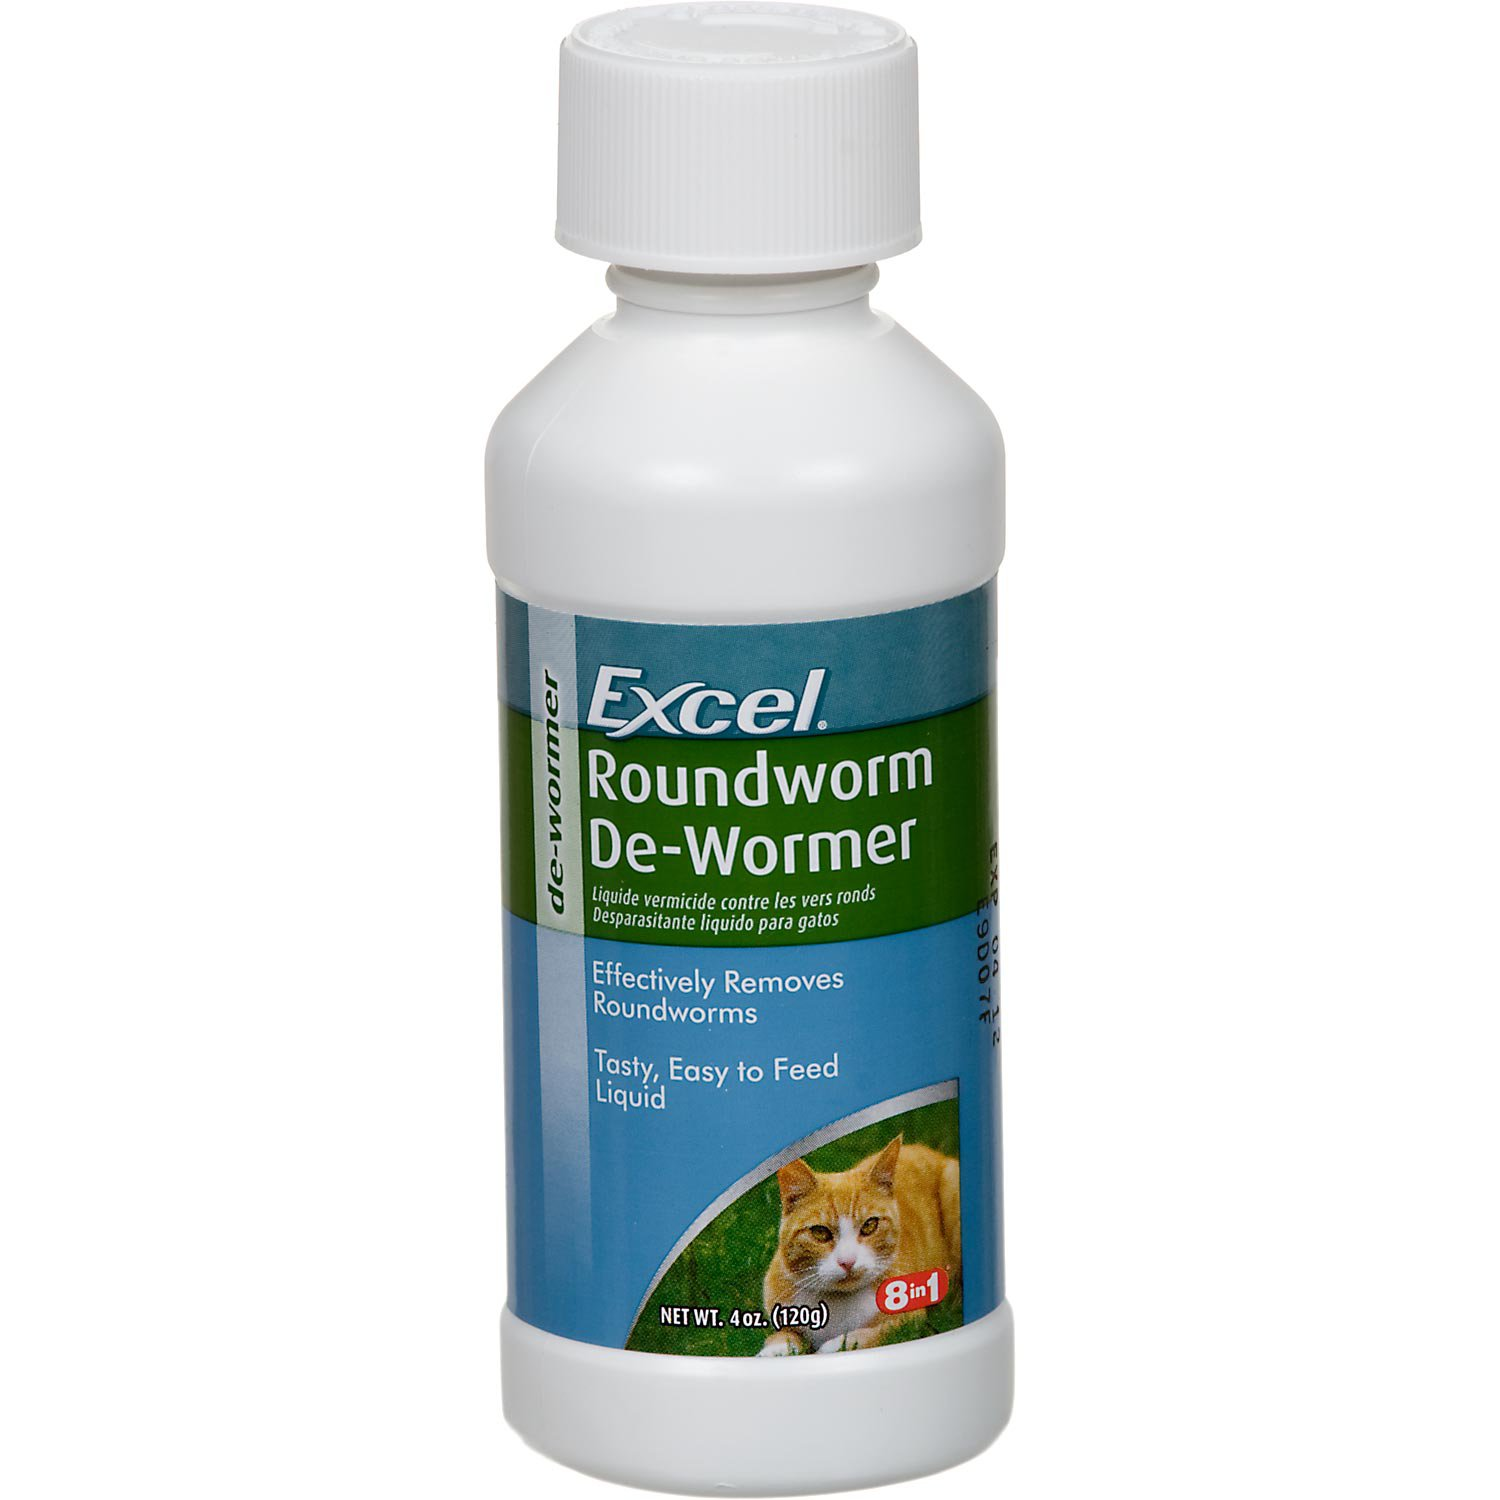 Excel Roundworm Cat De Wormer Petco